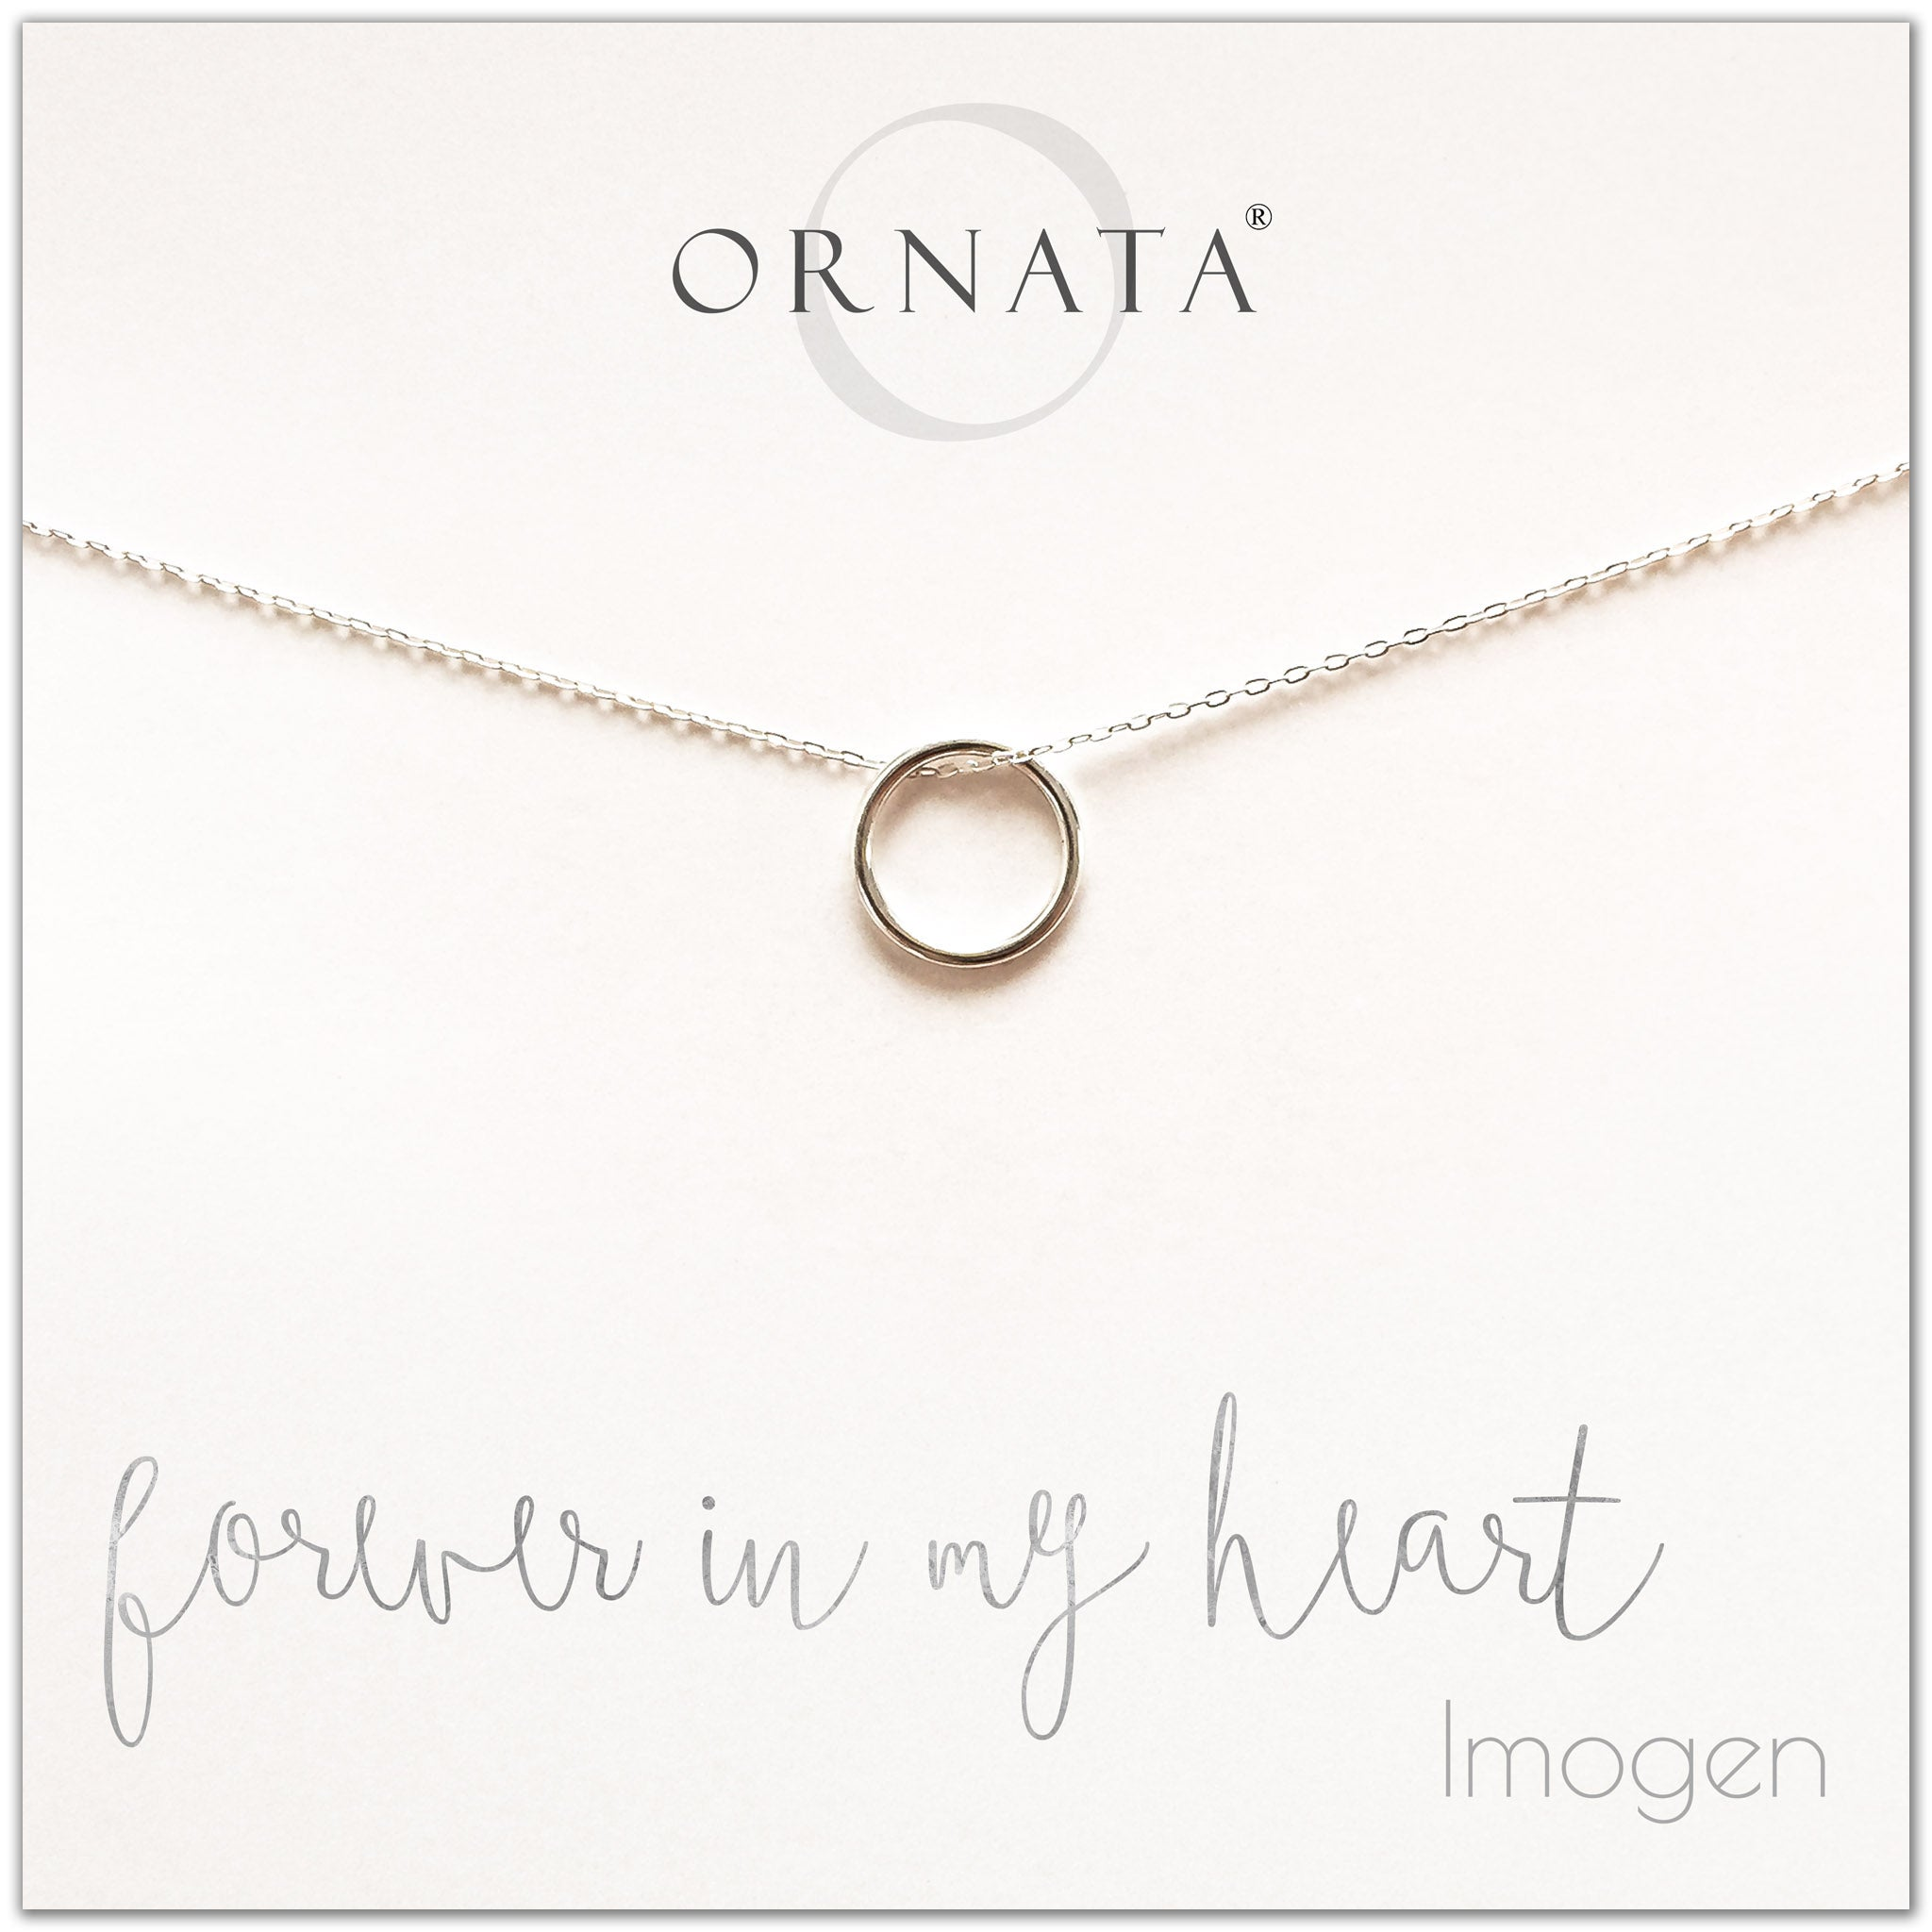 Forever in my heart necklace - personalized silver ring necklace. Our sterling silver custom jewelry is a perfect gift for girlfriends, wives, mothers, nieces, daughters, best friends, sisters, significant others, and soul mates - symbolic circle necklace to show your love.